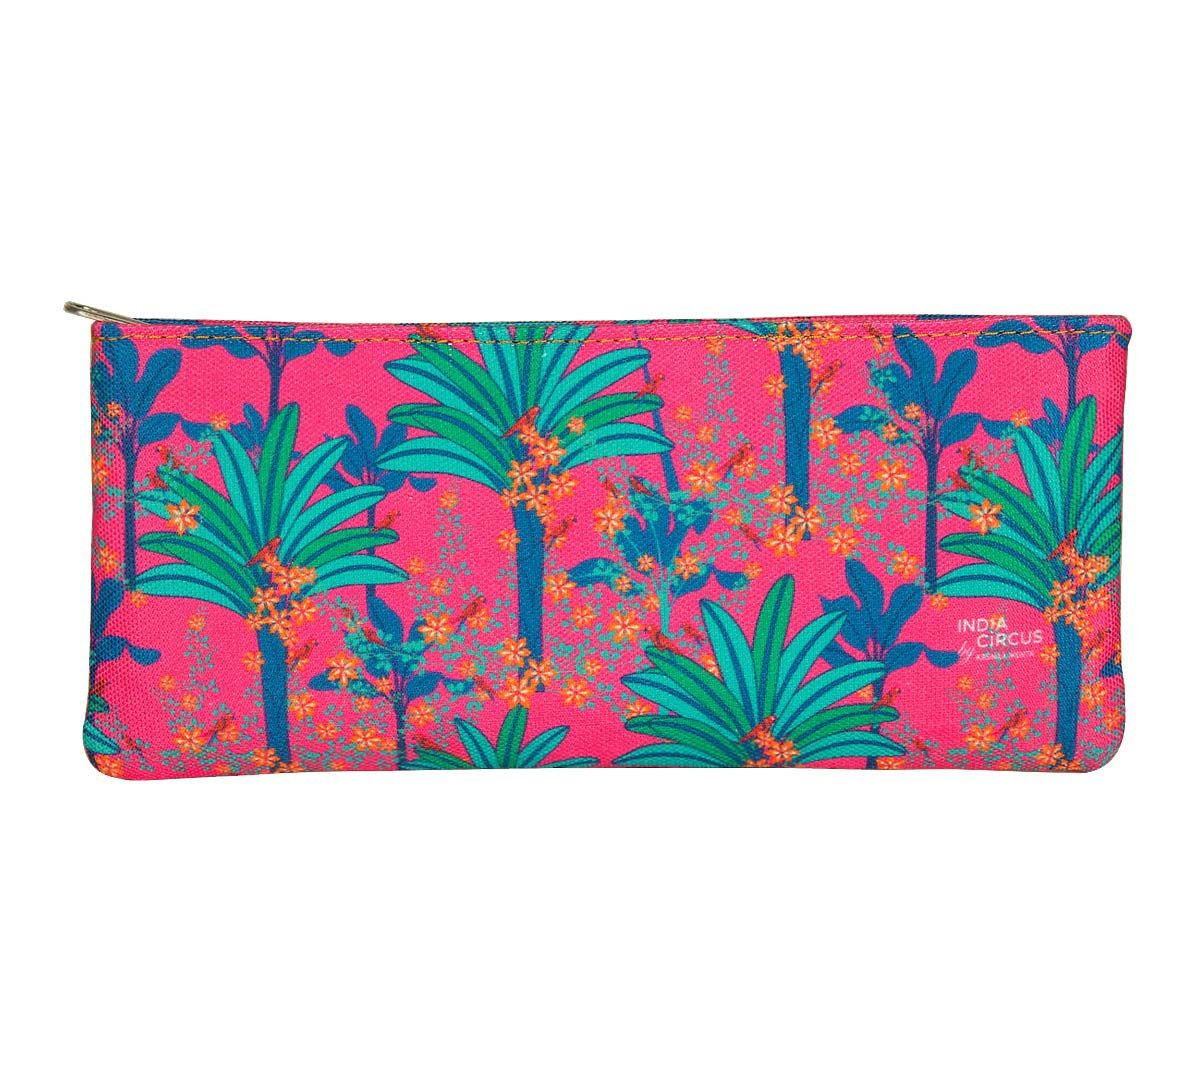 India Circus Royal Palms Small Utility Pouch